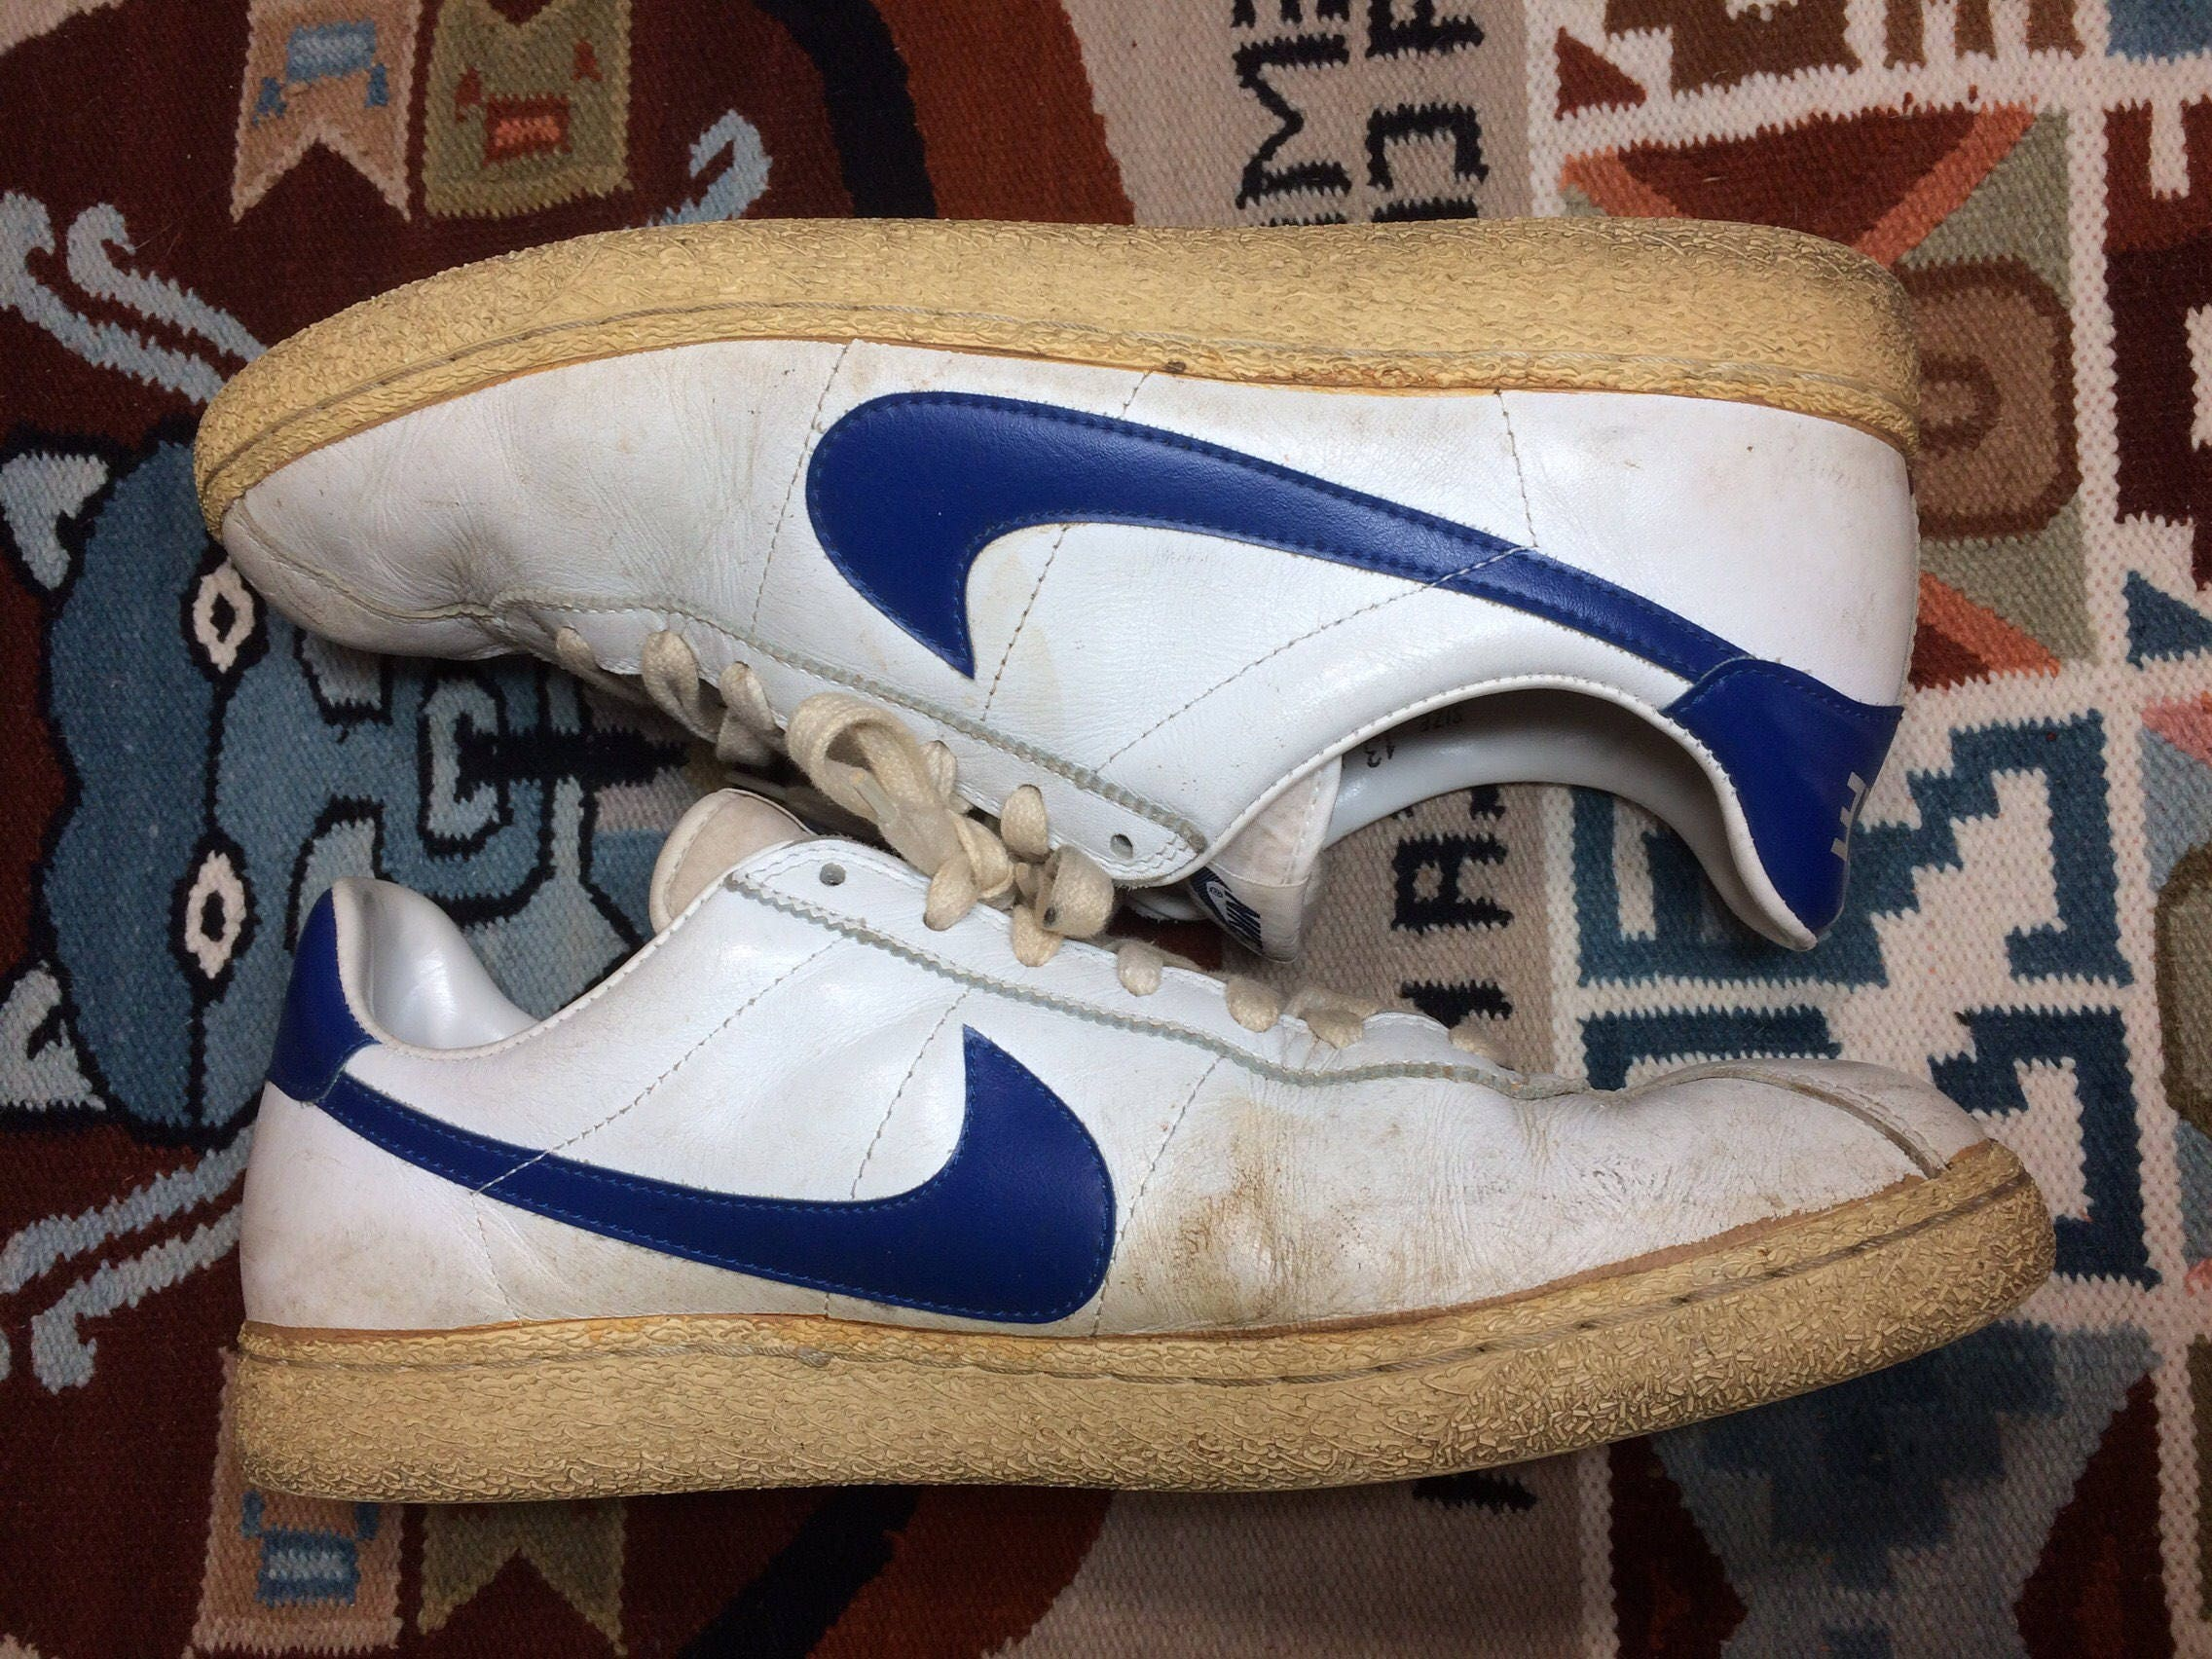 b10e1ec1080a4a 1982 Nike Bruin leather Sneakers size 13 White blue swoosh made in Thailand Marty  McFly back to the future